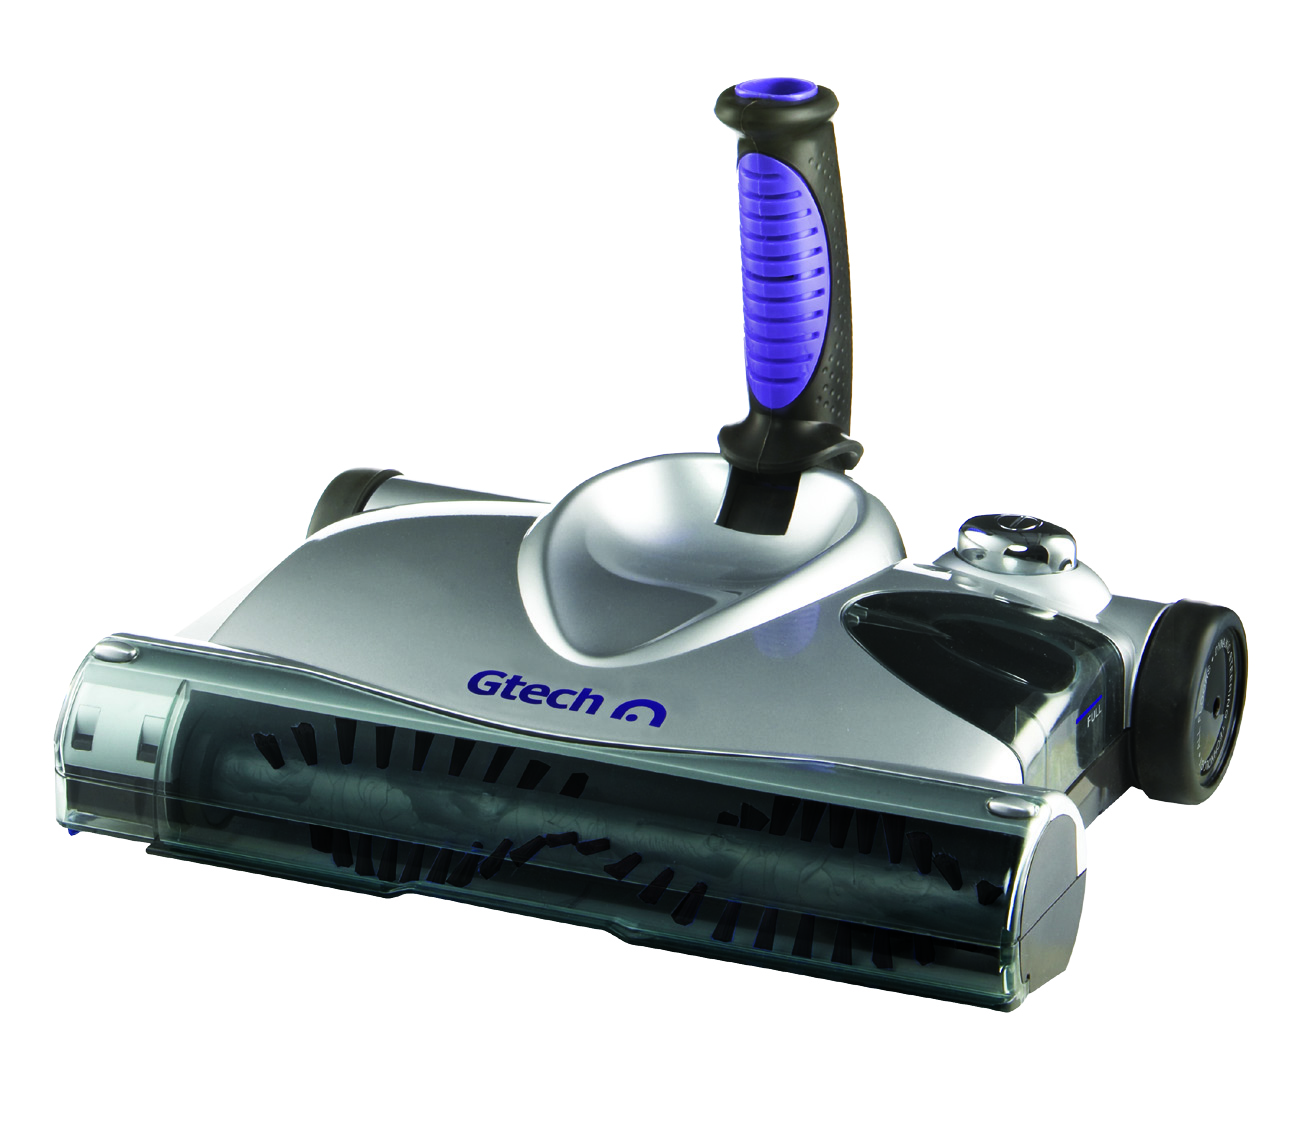 Gtech s cordless floor sweepers are available from argos debenhams